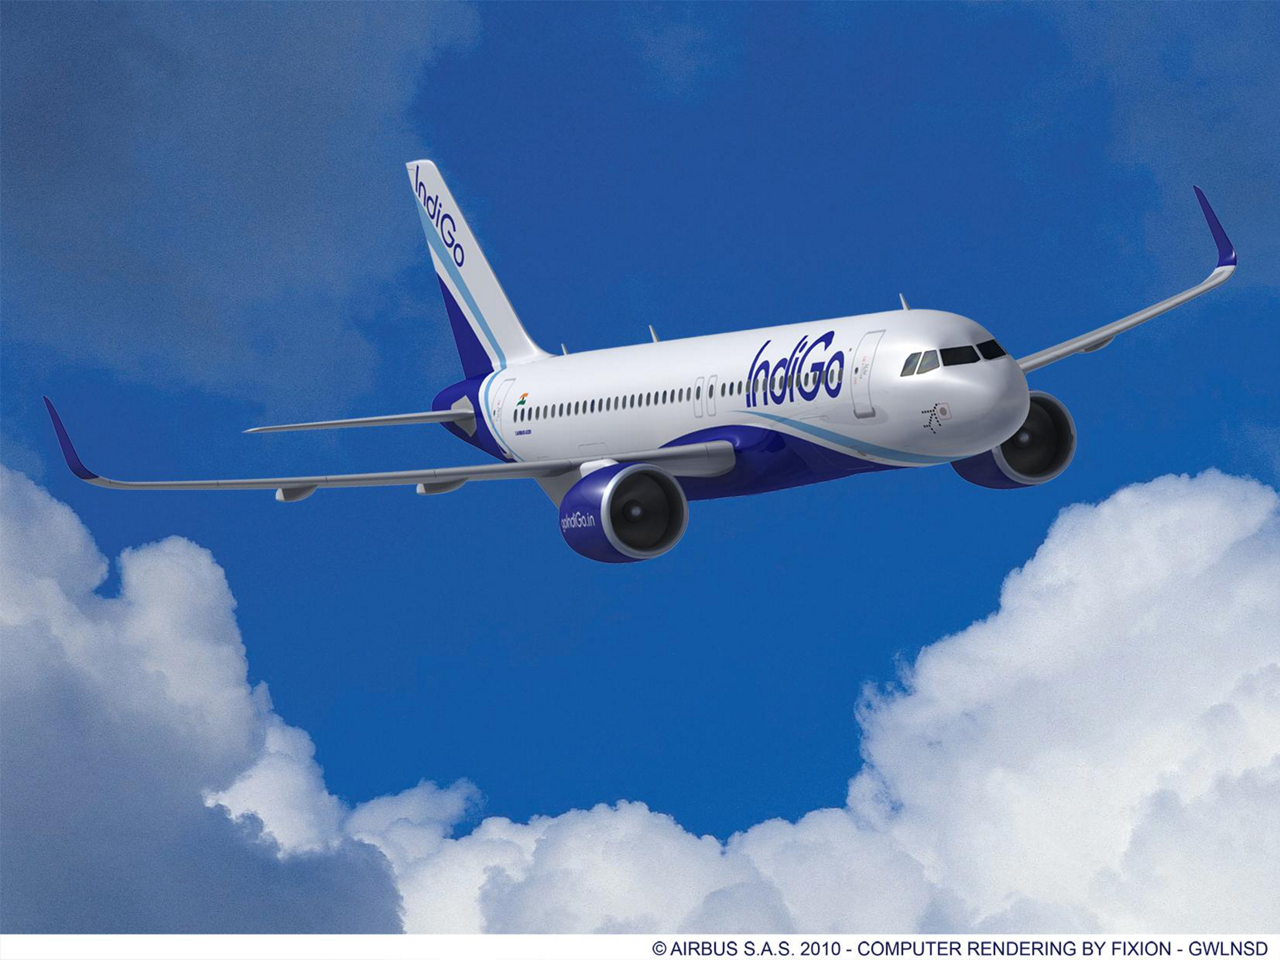 IndiGo's Memorandum of Understanding (MoU) for 250 A320neo Family aircraft – announced 15 October 2014 – will become Airbus' single largest order by number of aircraft